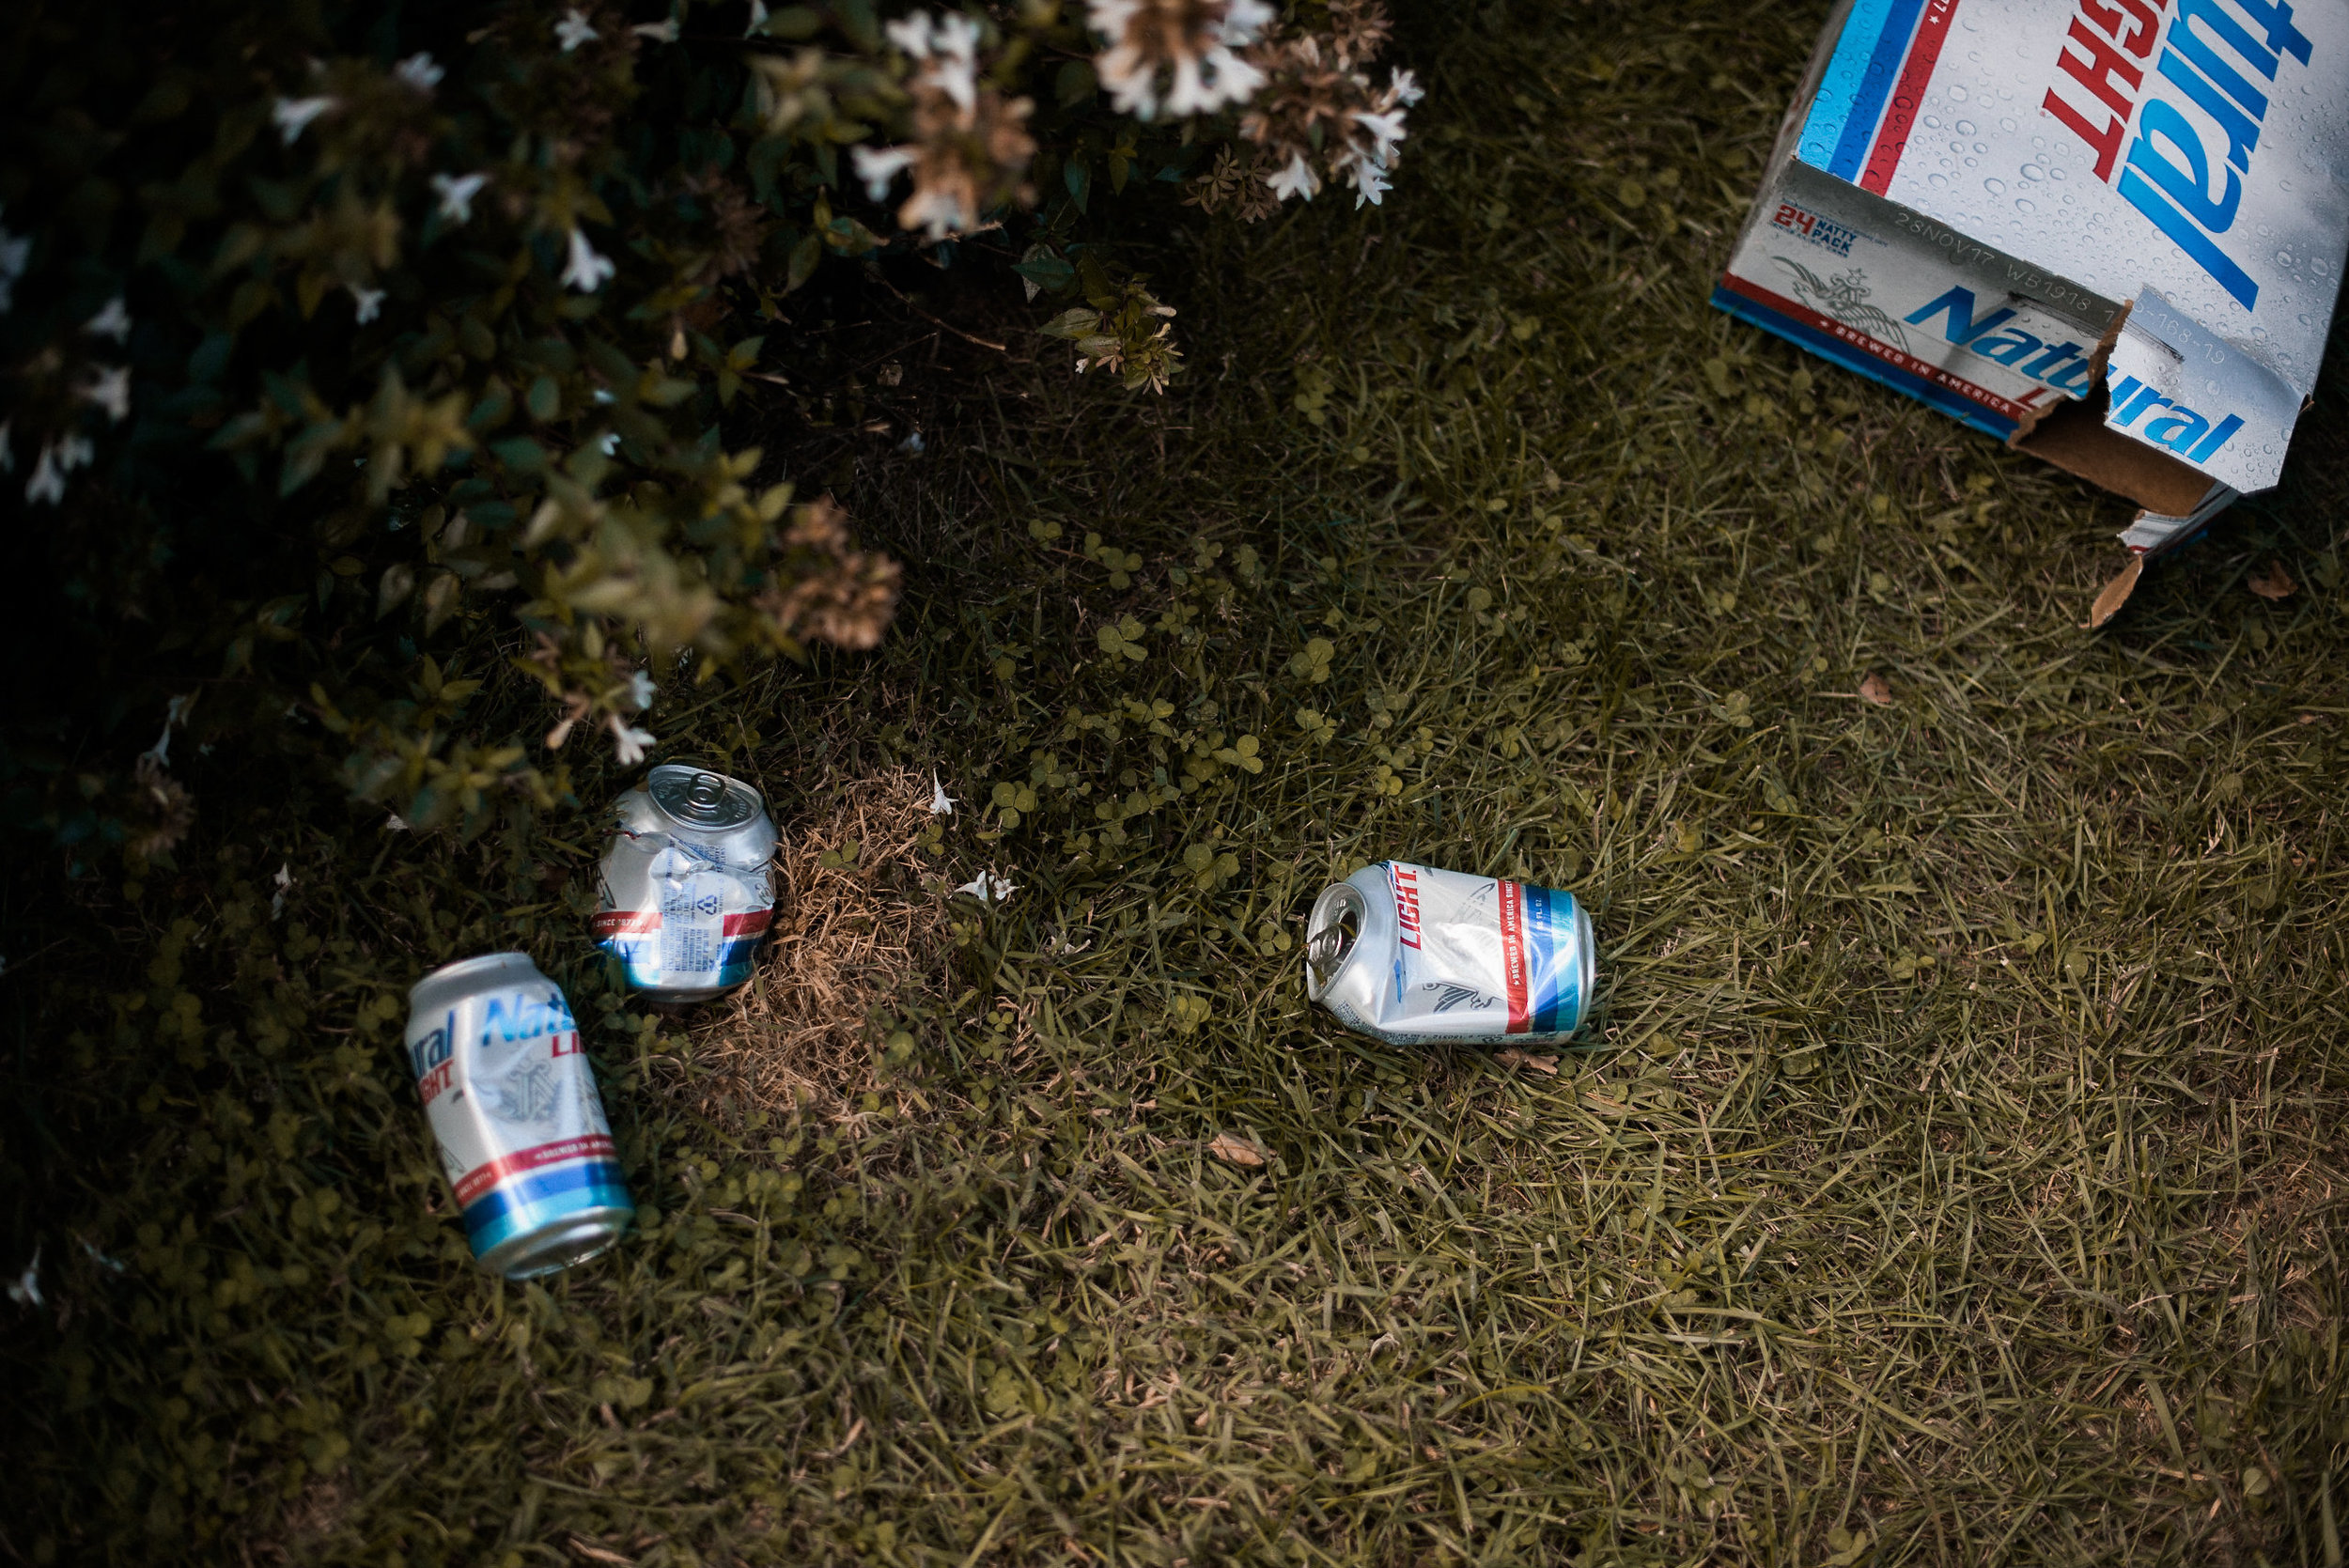 Beer cans on ground